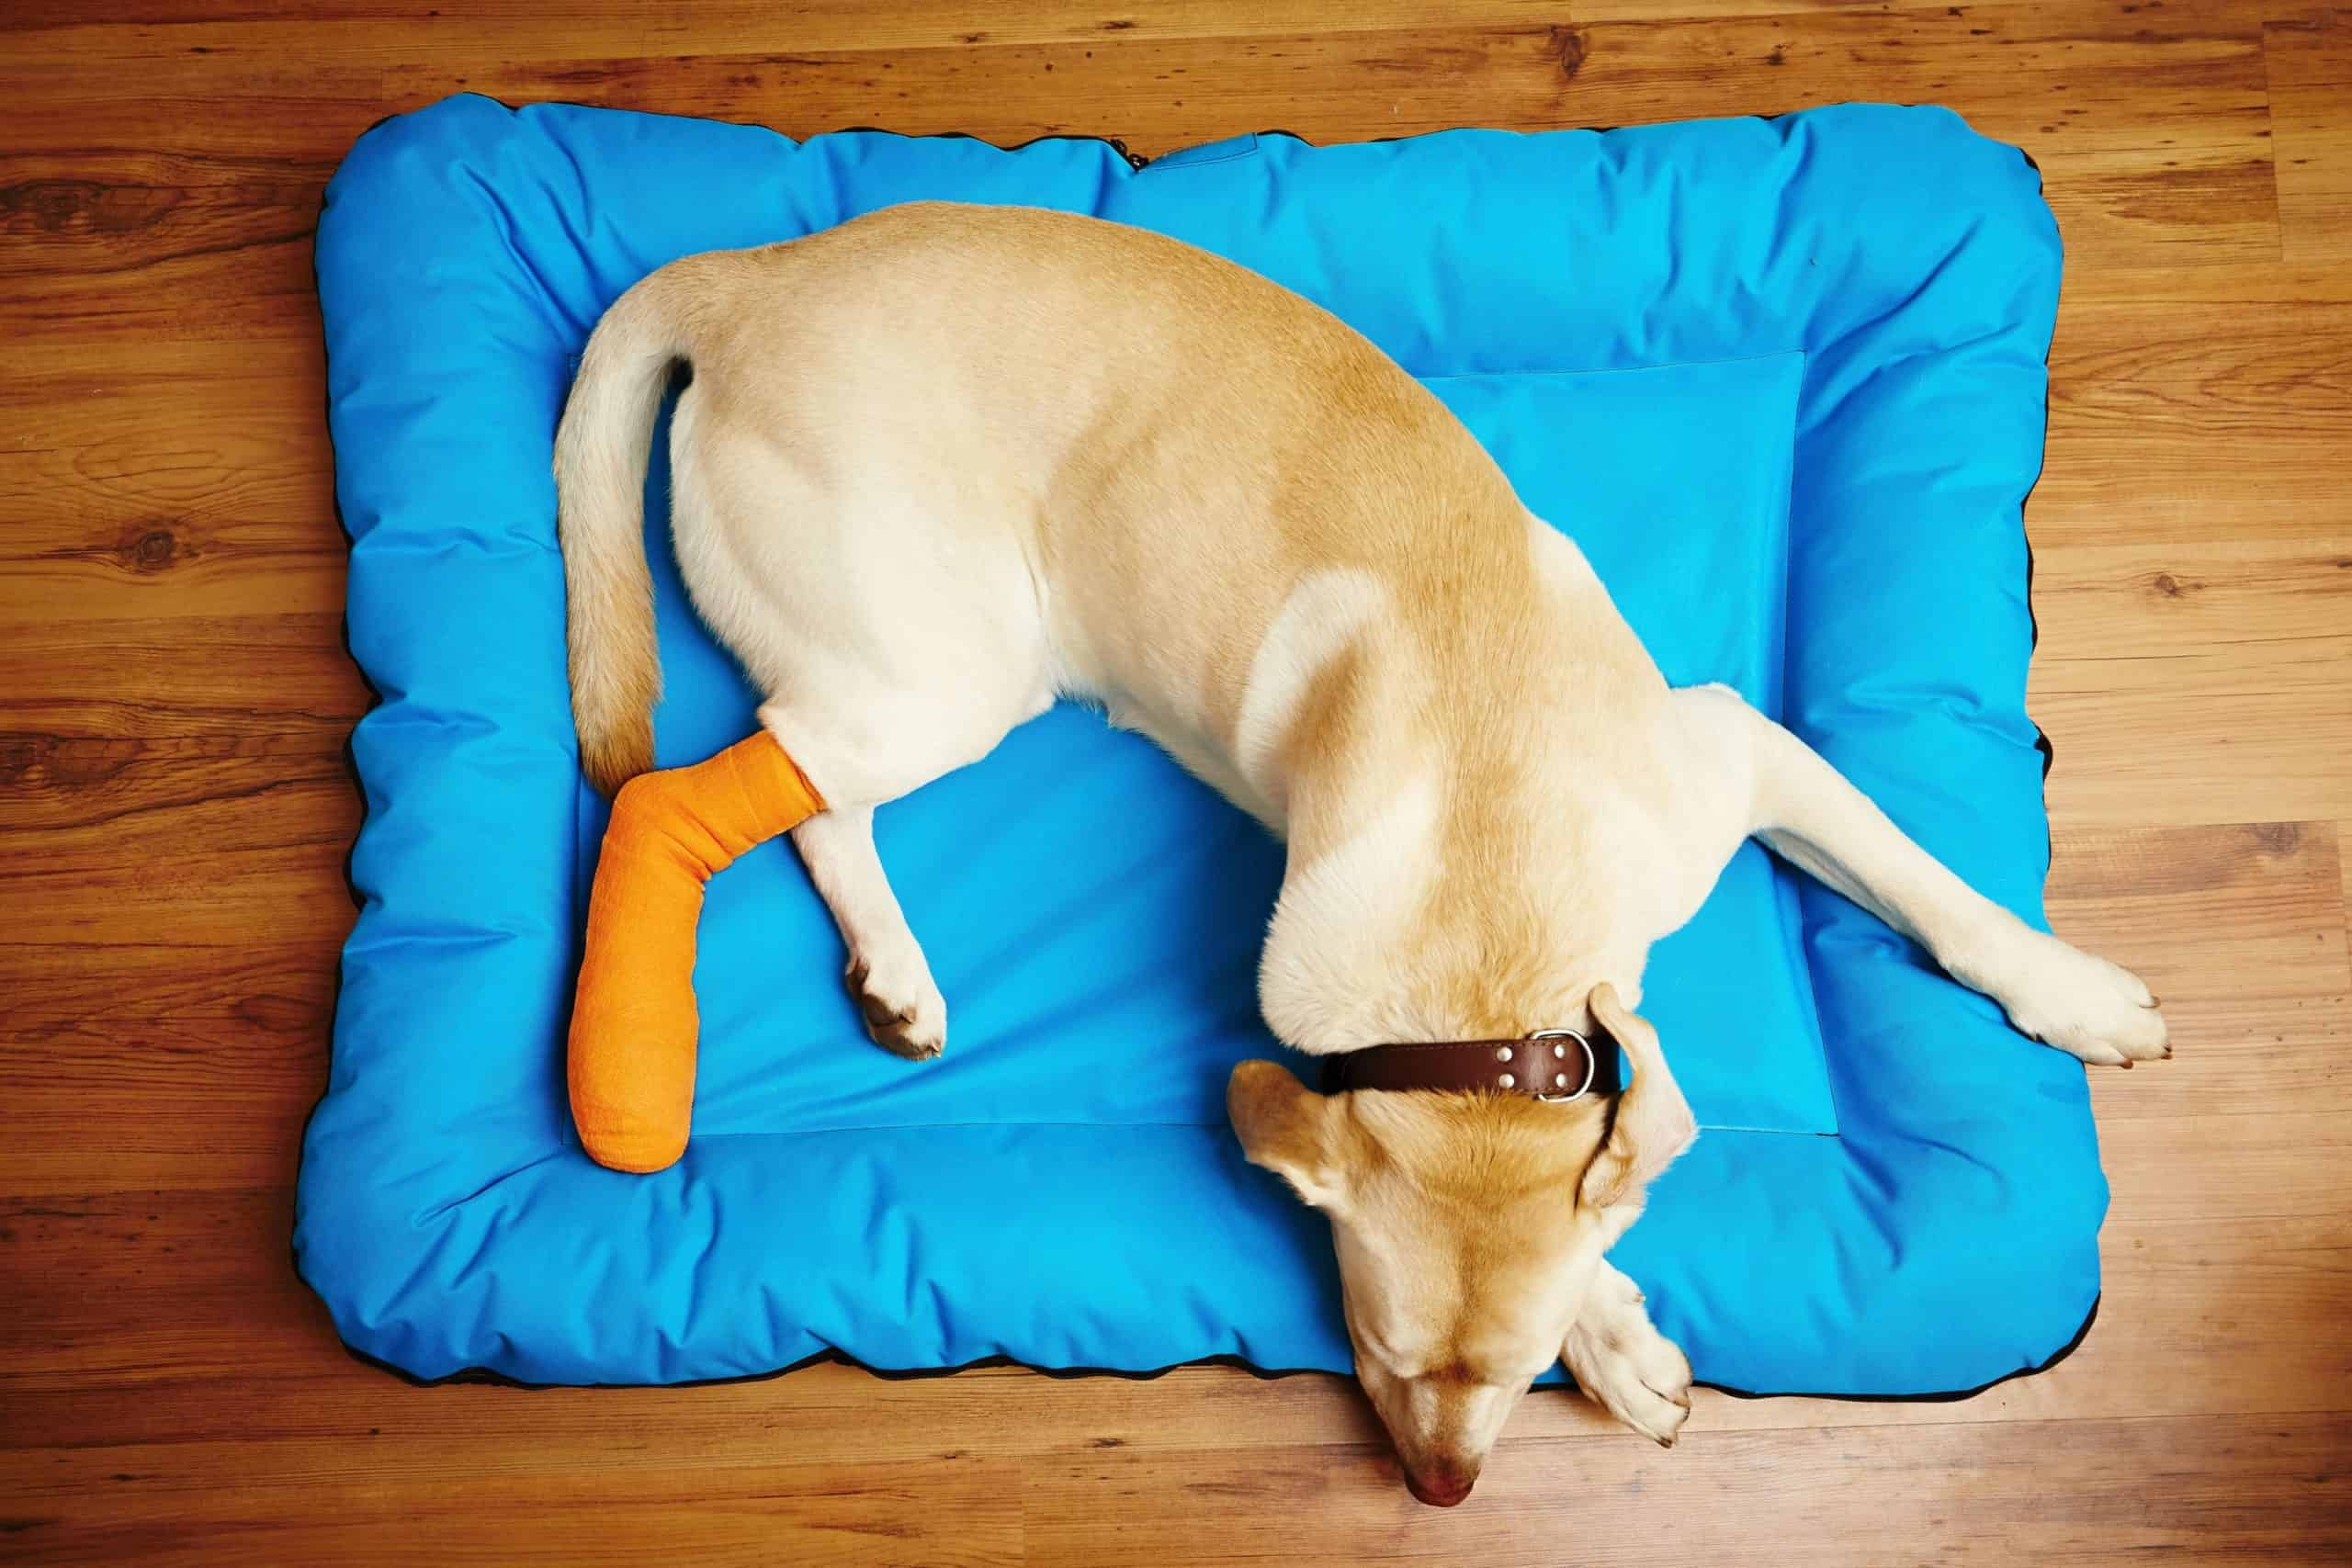 Yellow Labrador with injured back leg rests on dog bed. While a luxating patella, or the dislocation of the kneecap, is most common in small dogs, its occurrence in larger dogs is increasing.